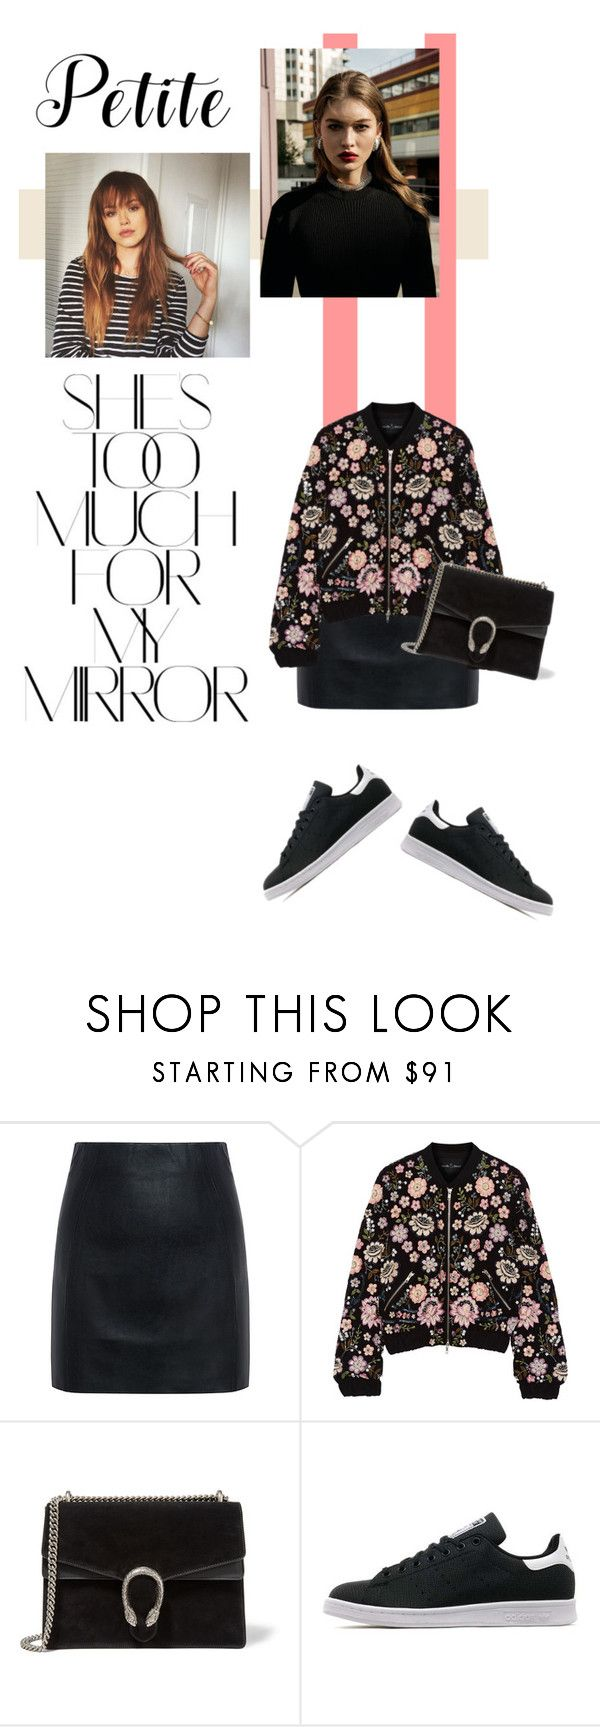 """""""petite"""" by katerina-rampota ❤ liked on Polyvore featuring McQ by Alexander McQueen, Needle & Thread, Gucci, adidas Originals, Rika, petit and powerlook"""